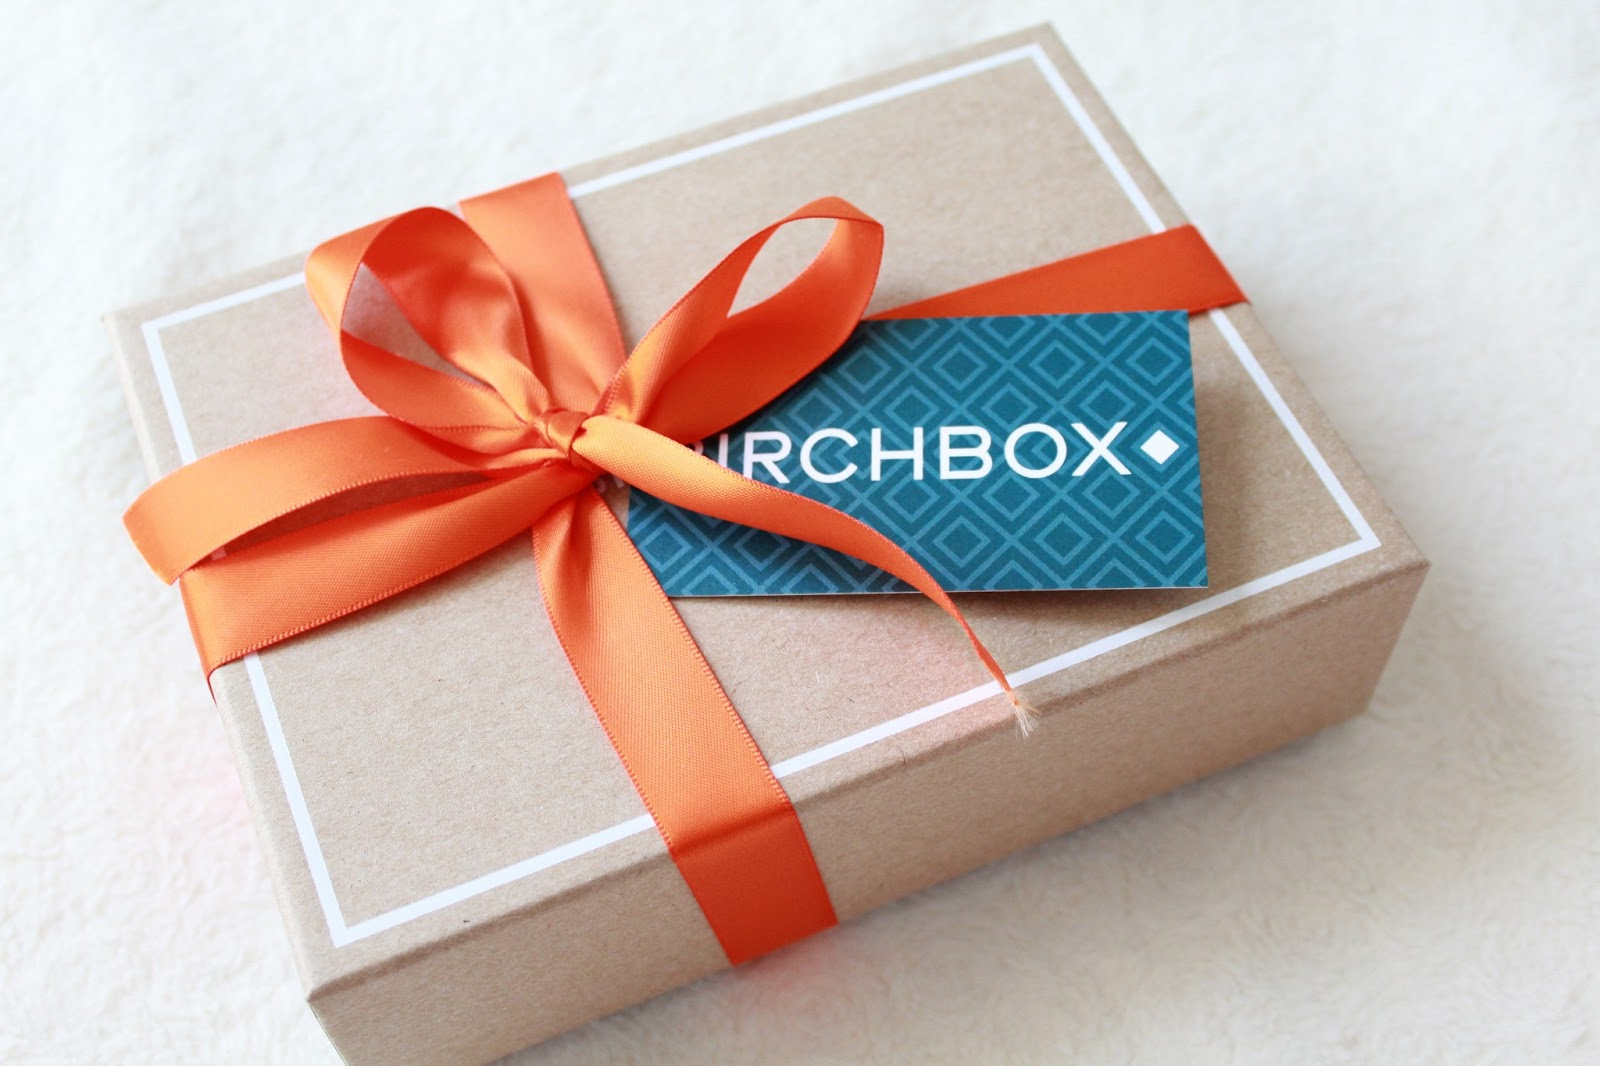 Birchbox June 2013